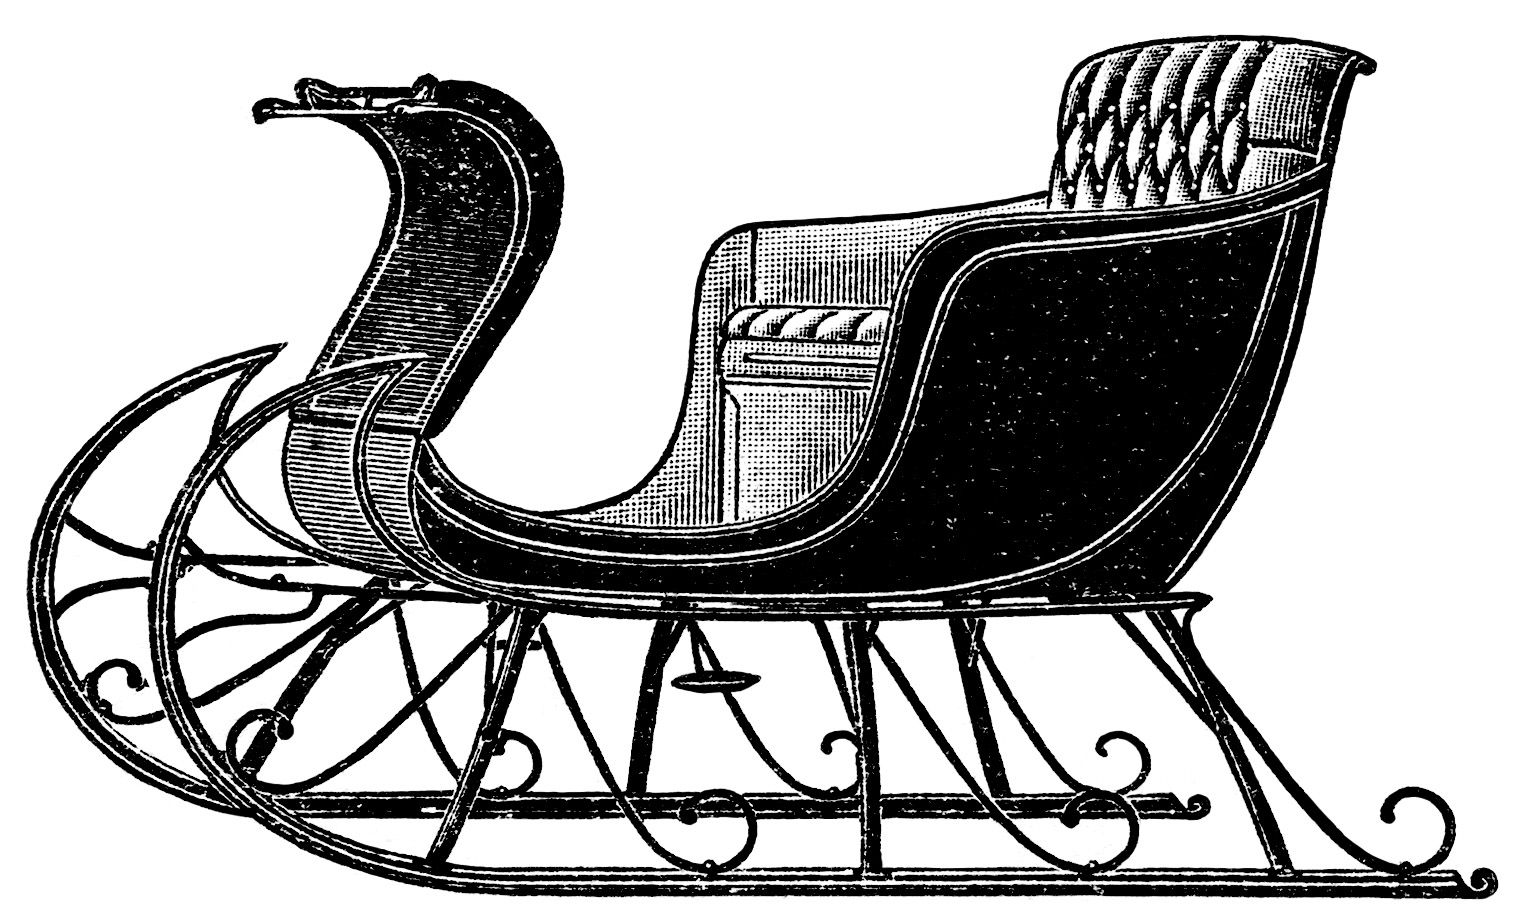 Sleigh clipart vintage. Horse drawn sleighs free